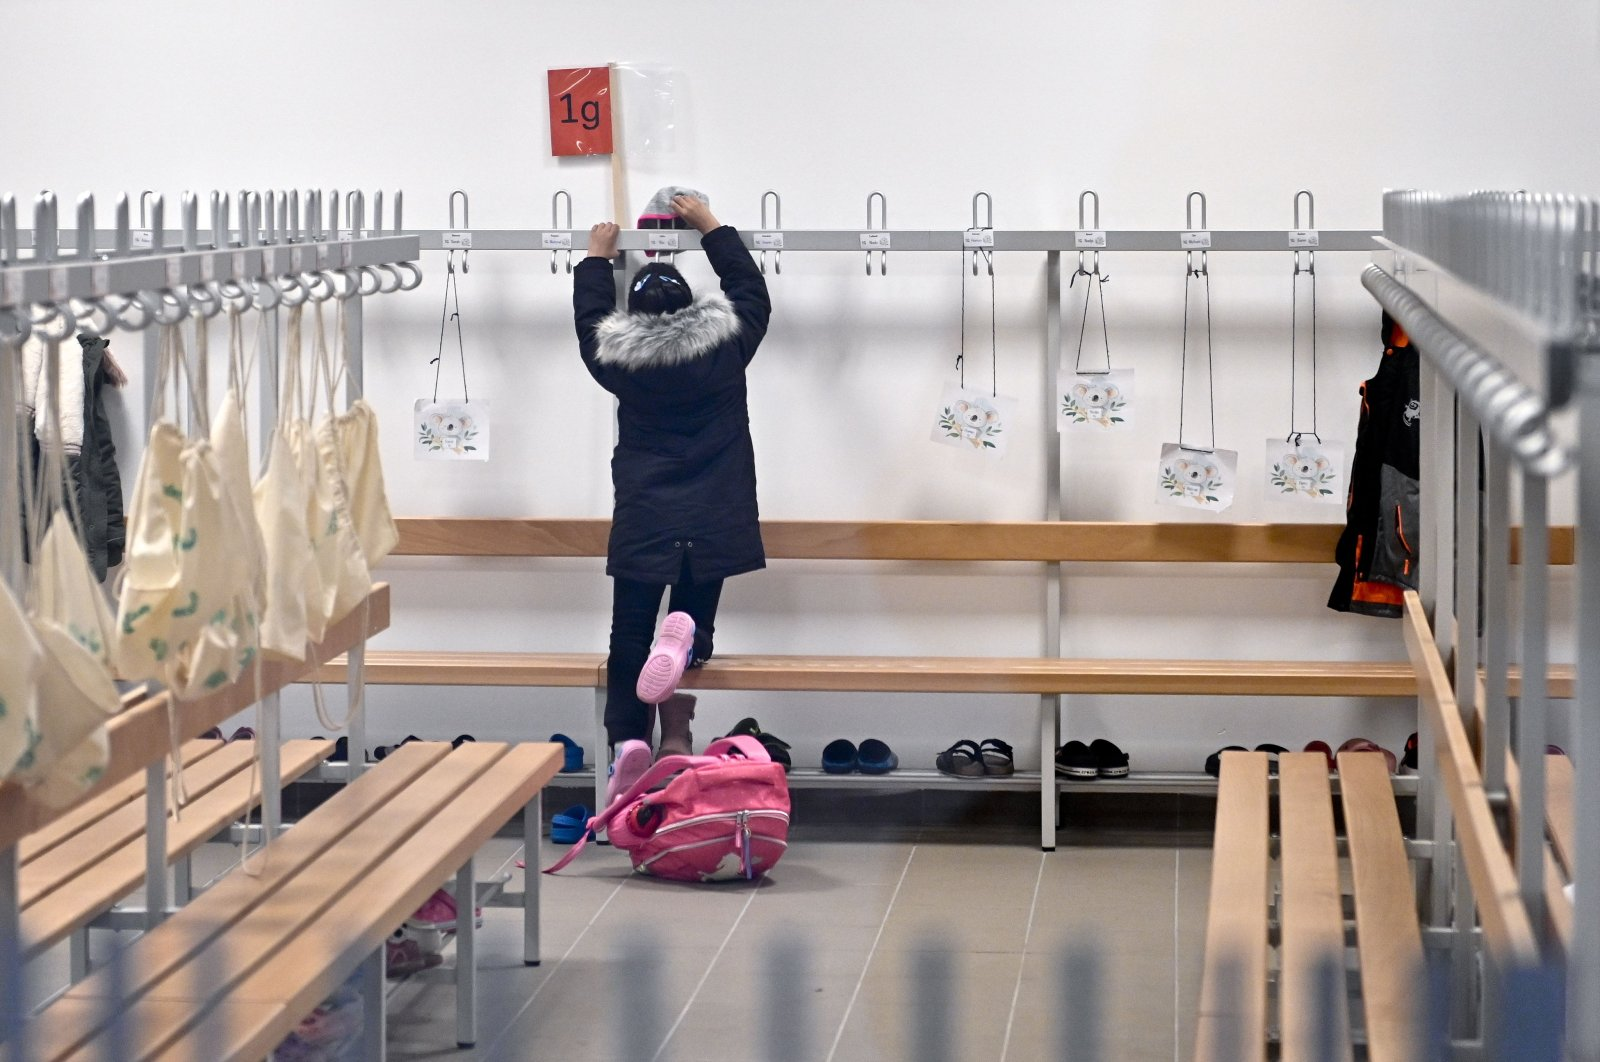 A schoolchild is pictured in the empty wardrobe of an elementary school in Vienna, Austria, on Nov. 17, 2020. (AFP Photo)